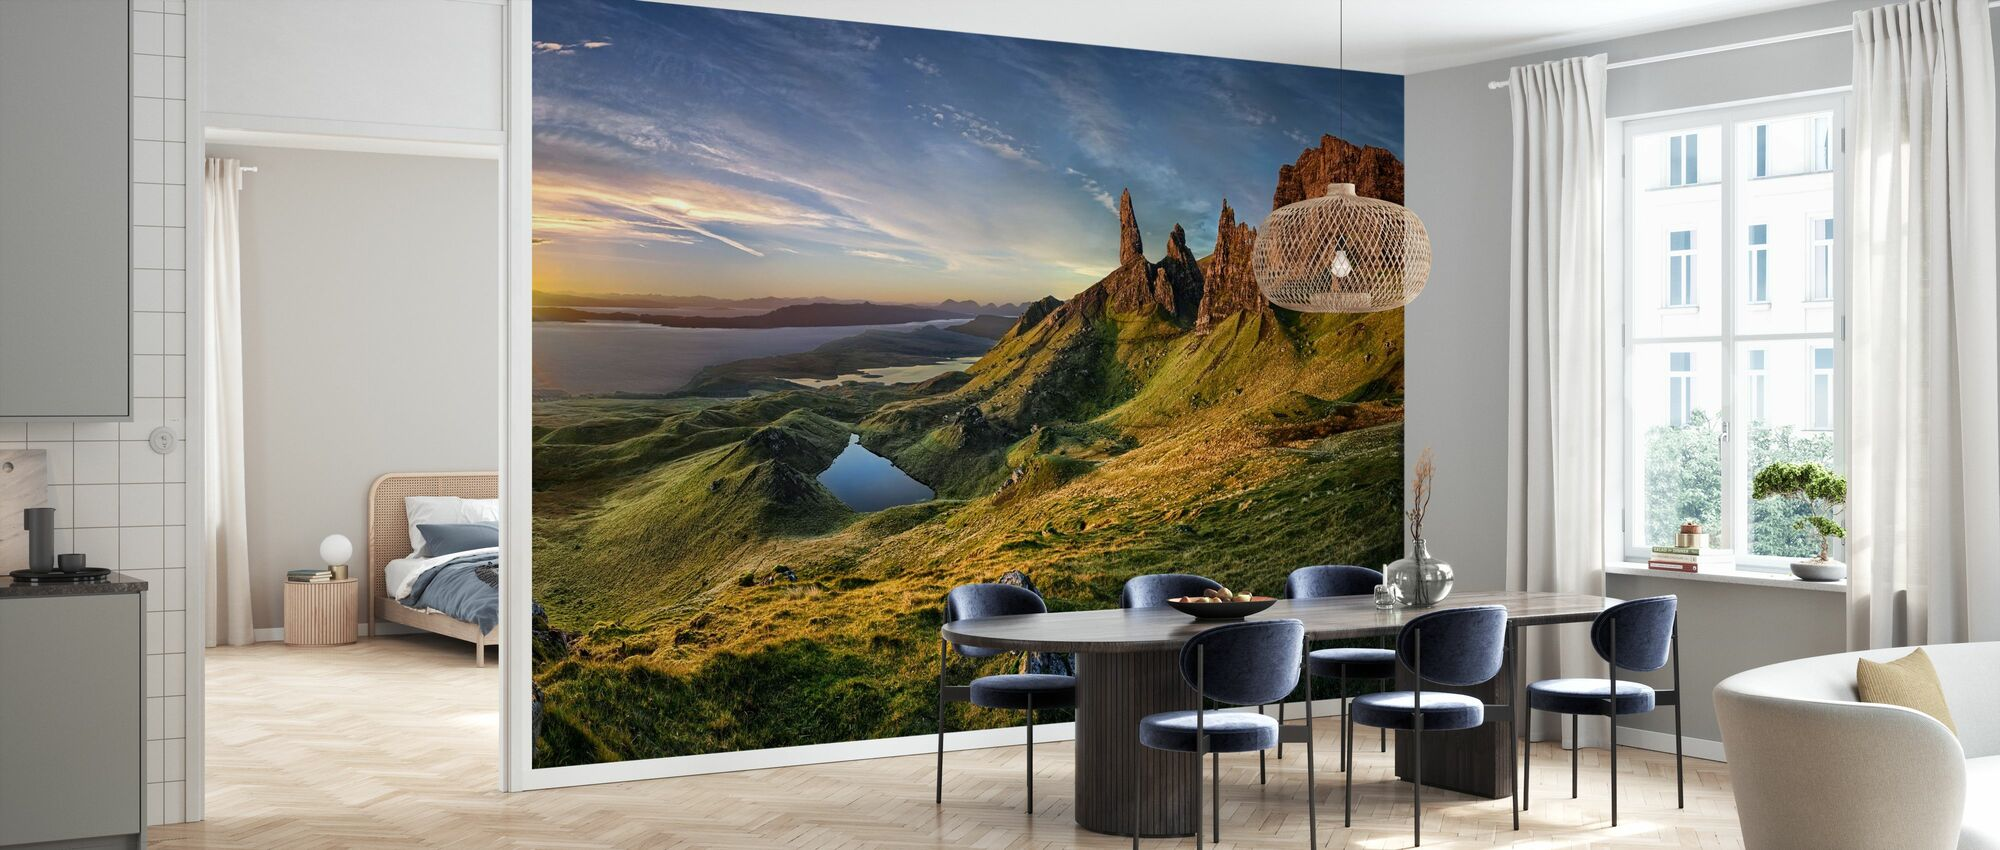 The Old Man of Storr - Wallpaper - Kitchen